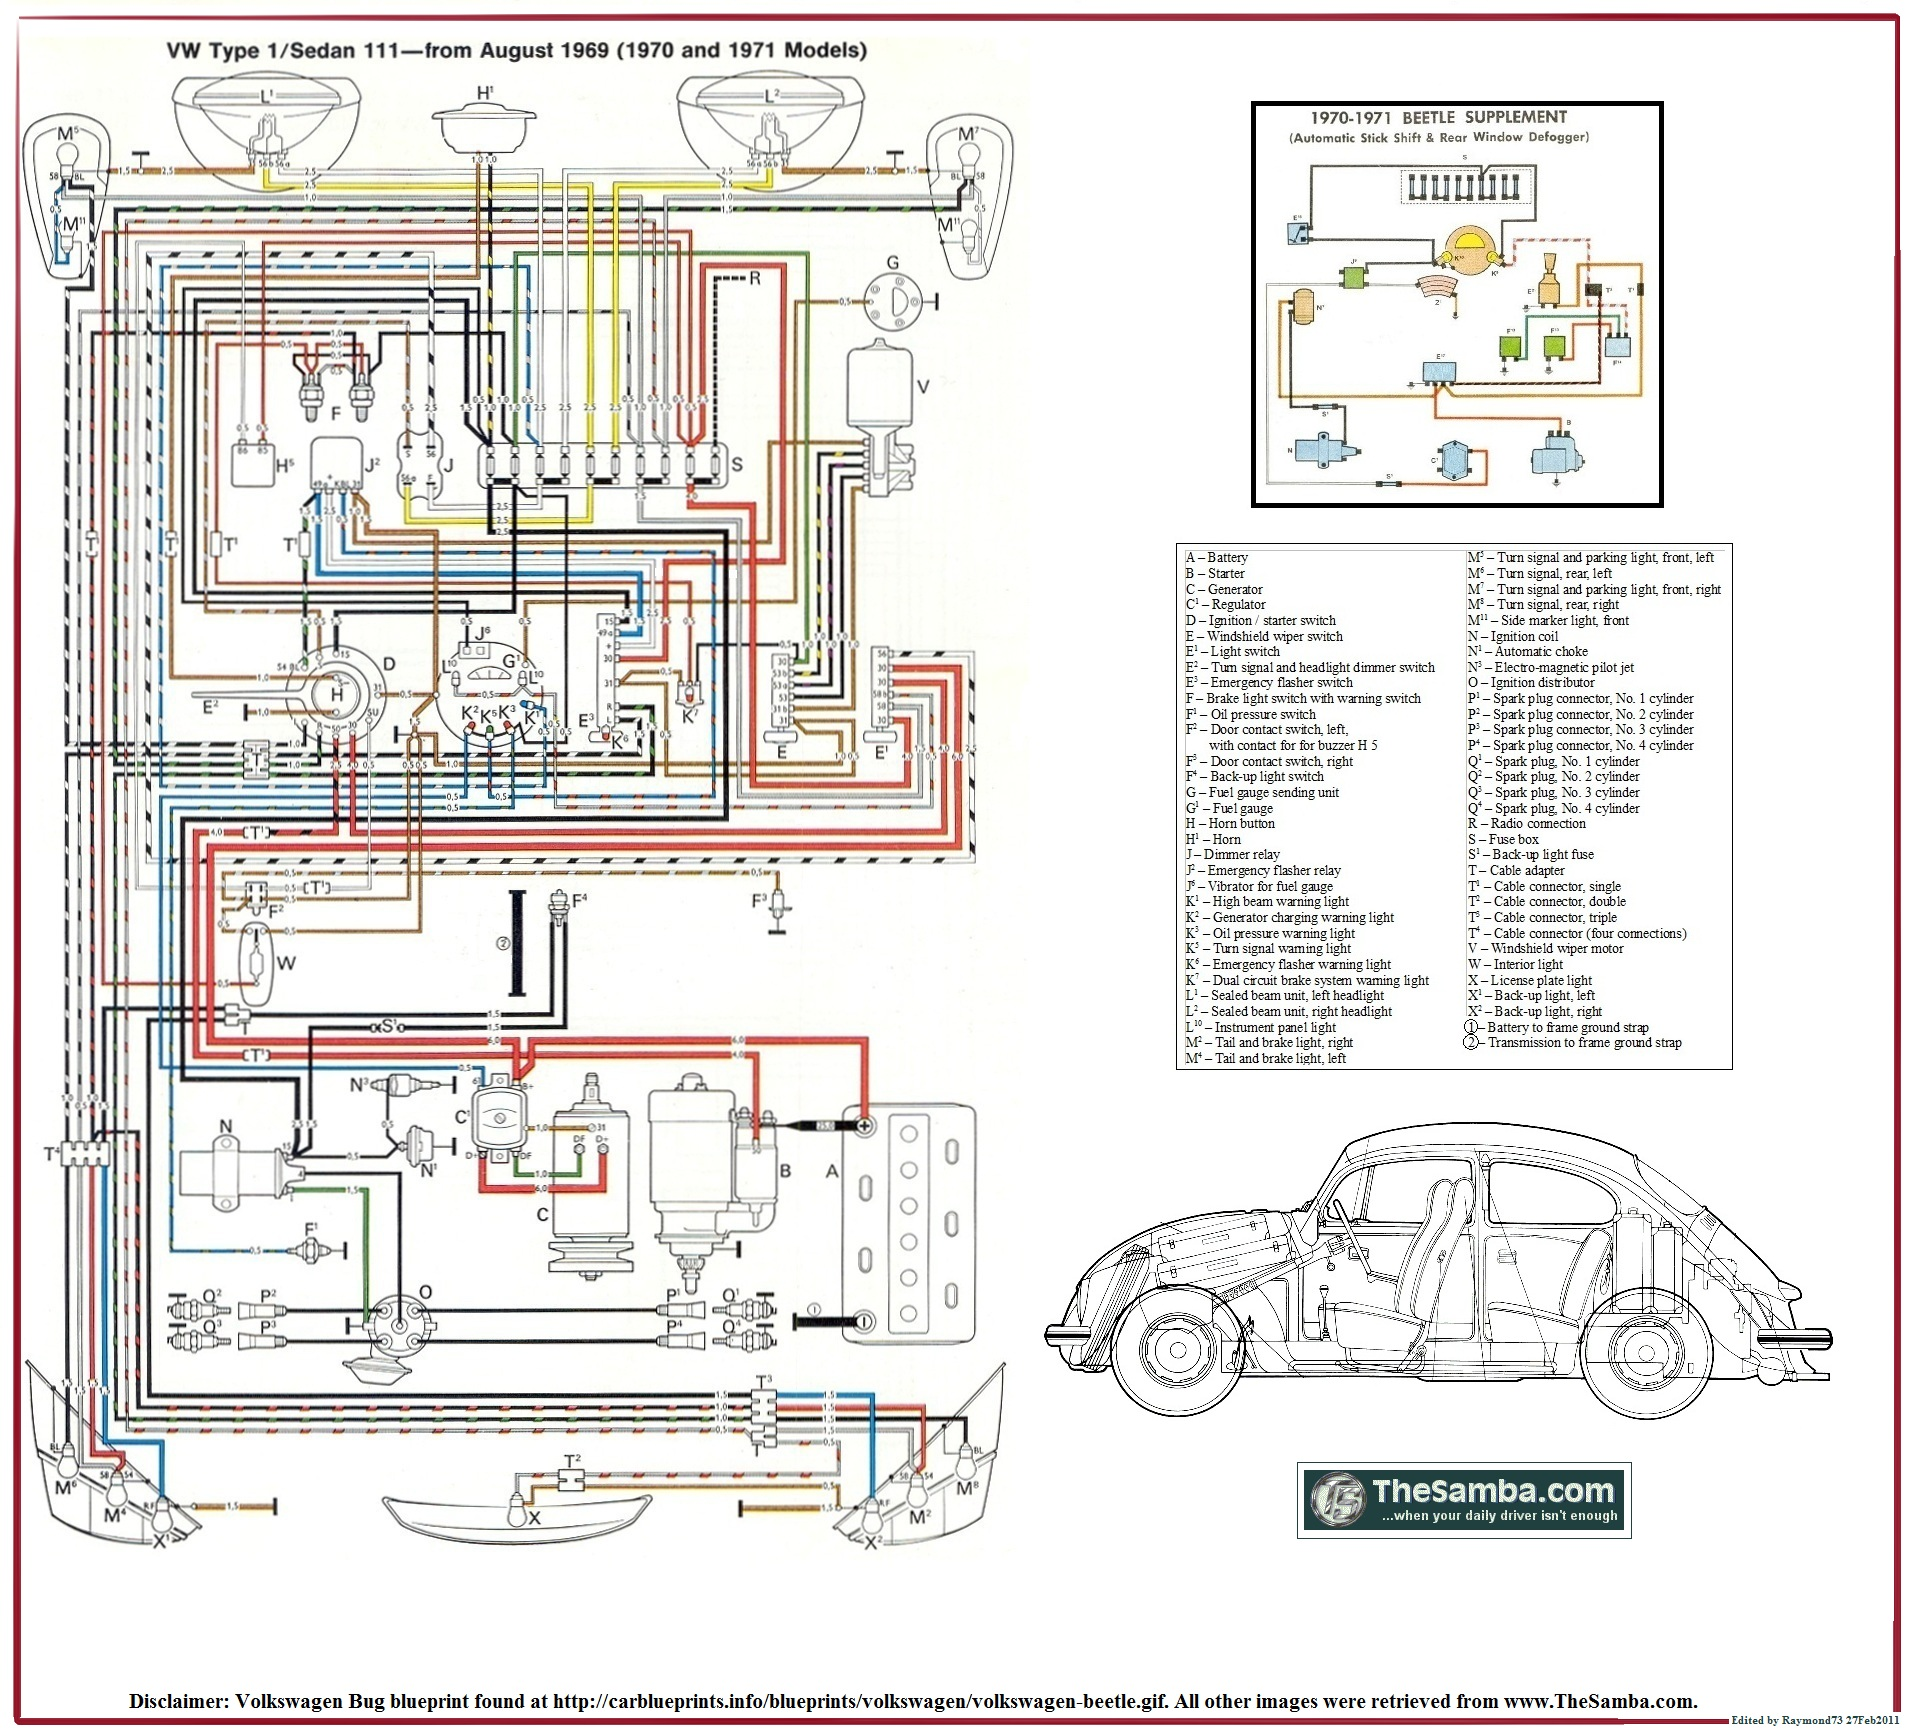 1970_VW_Type_1_Poster 1970 vw beetle wiring diagram 1967 vw beetle wiring diagram vw bug turn signal wiring diagram at eliteediting.co